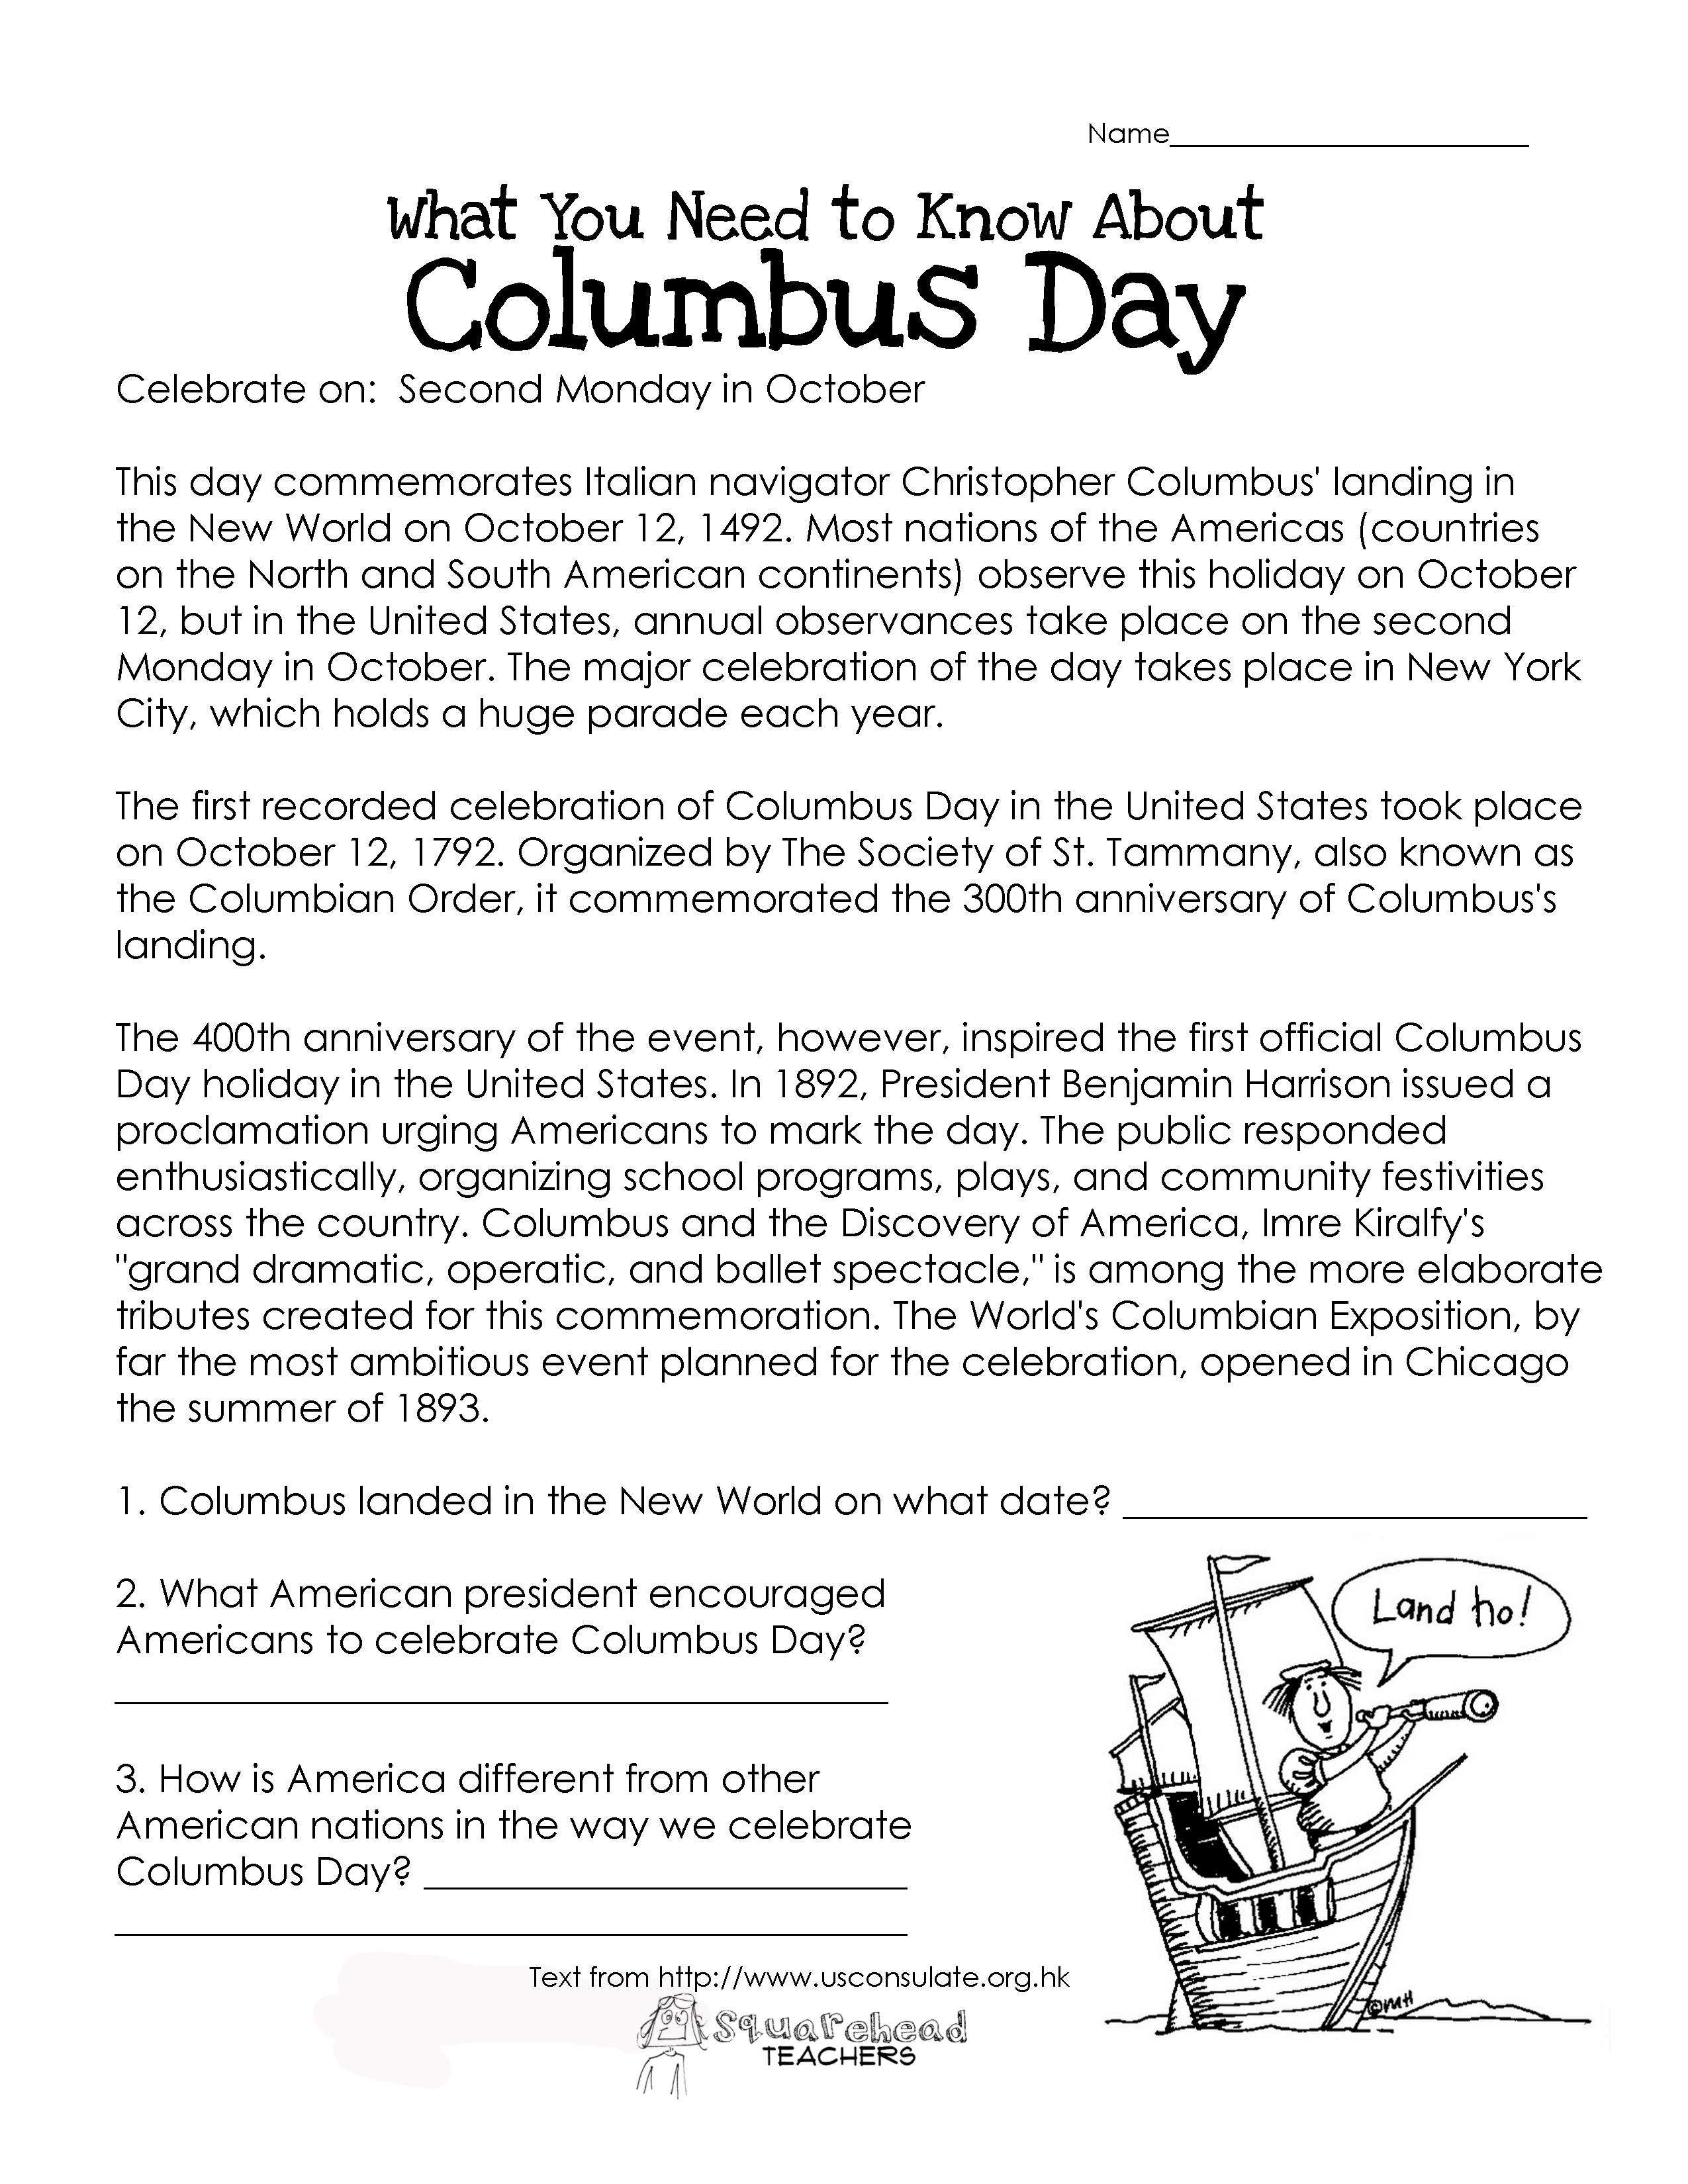 - Christopher Columbus Teaching Resources KS1 And KS2